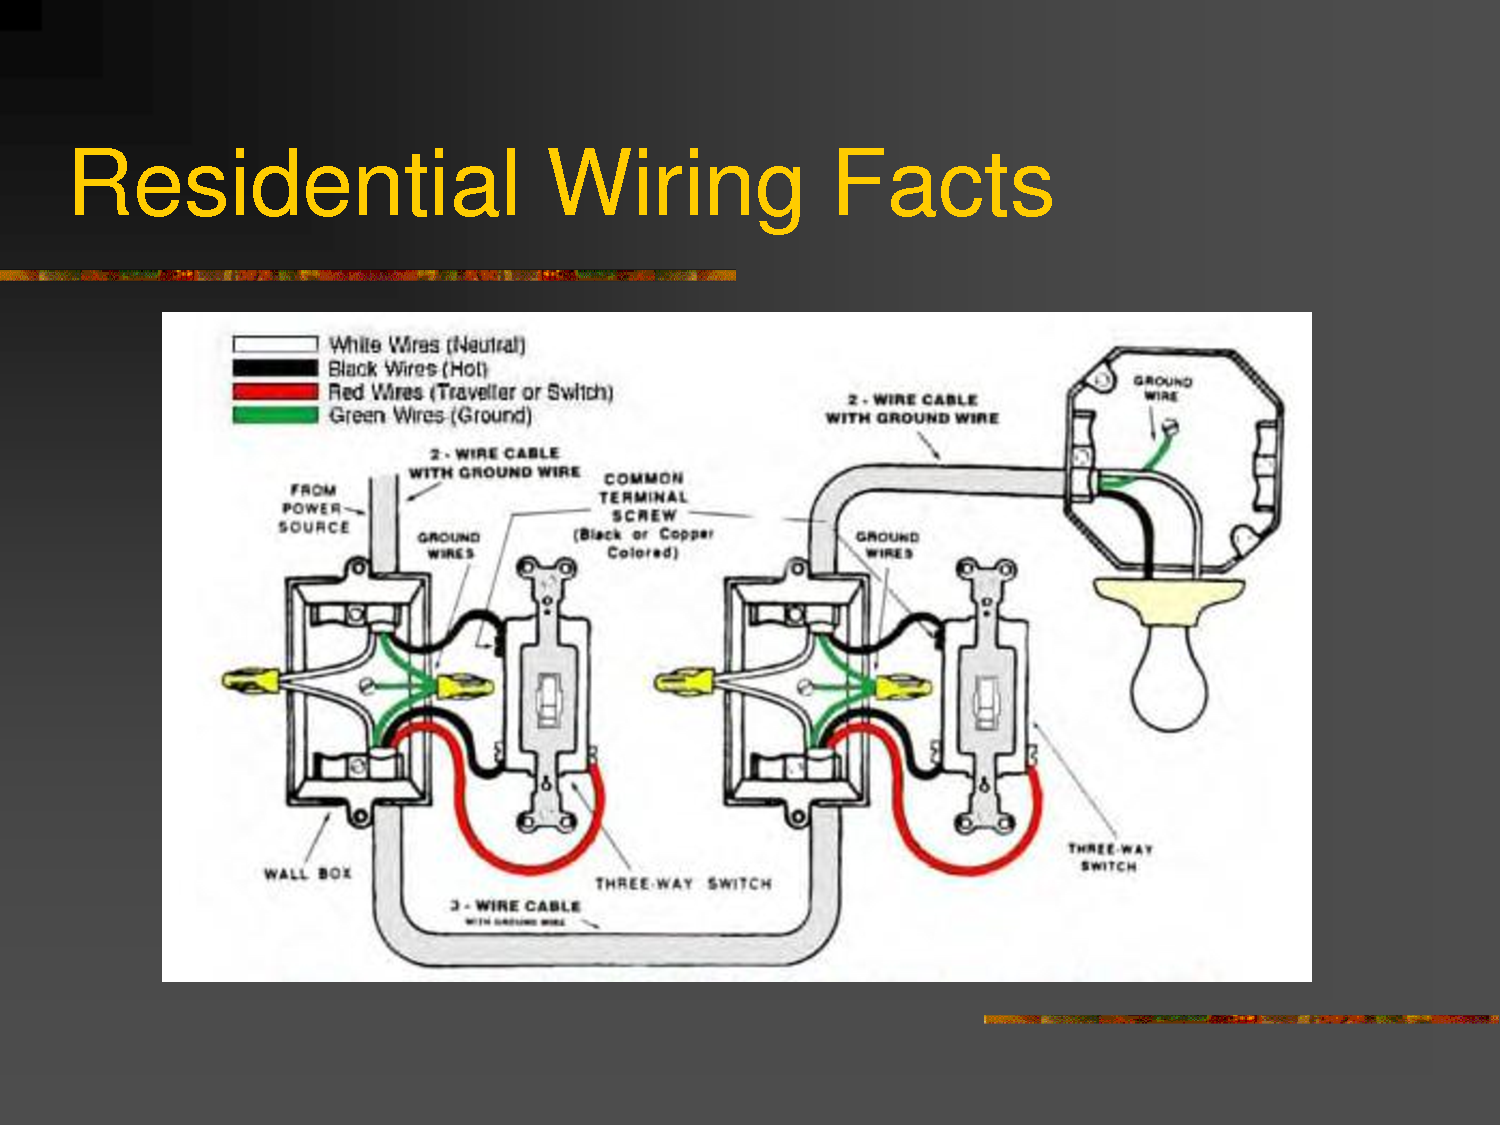 85f6d7068dddf27aa5737fc68962f04e 4 best images of residential wiring diagrams house electrical home wiring basics with illustrations at panicattacktreatment.co